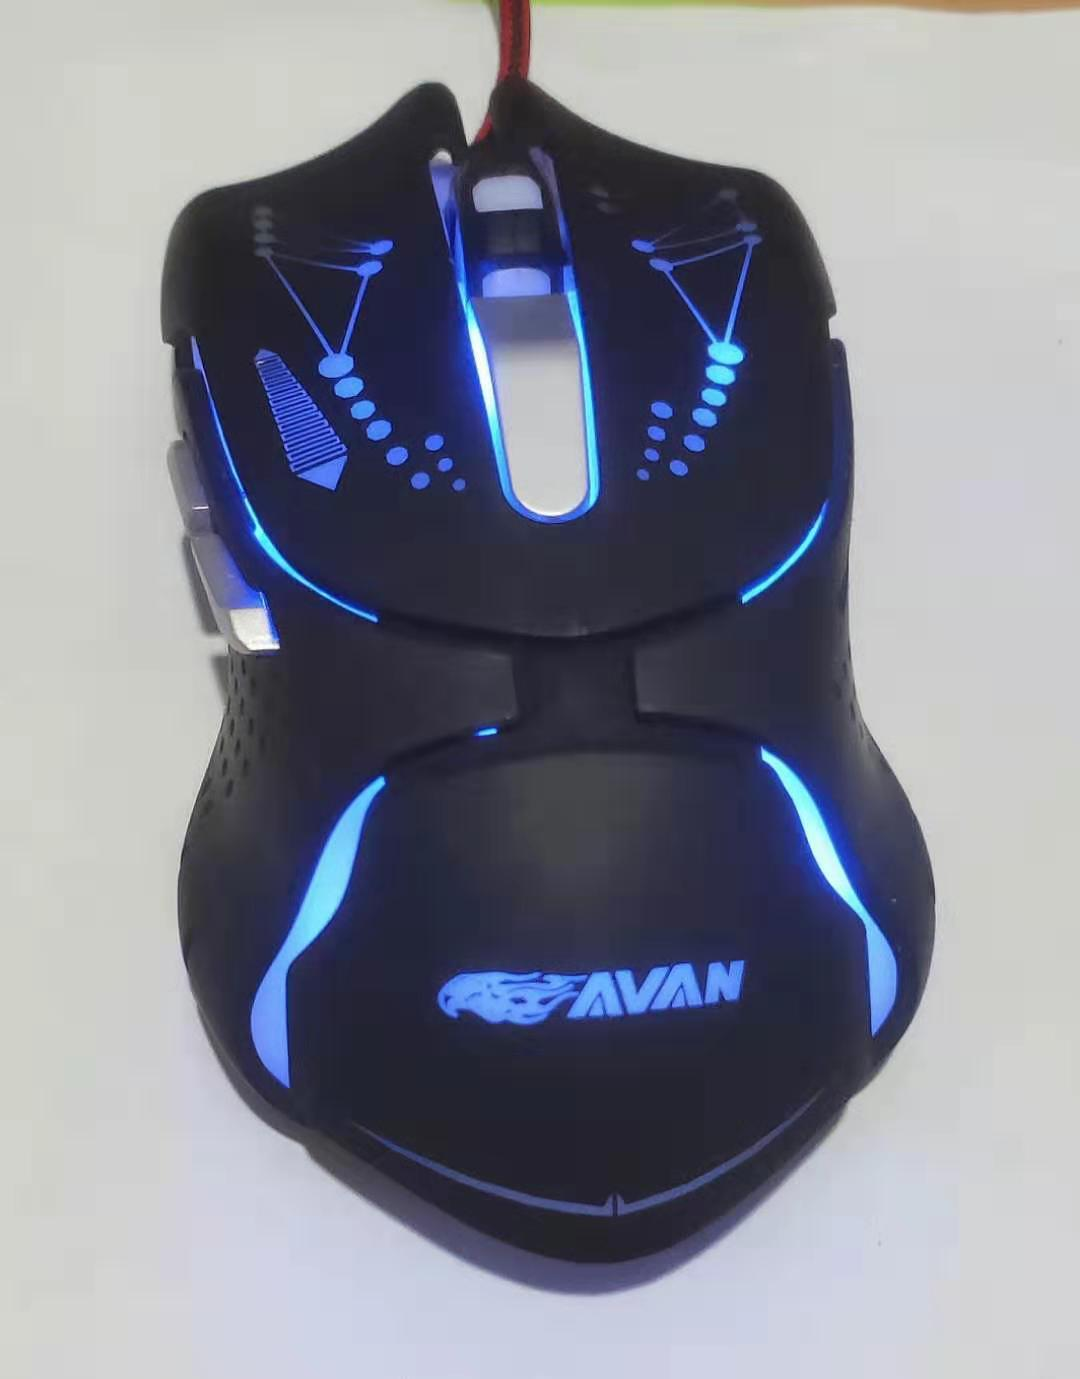 https://www.lazada.co.id/products/mouse-gaming-g8-kokoh-i693132823-s961216594.html